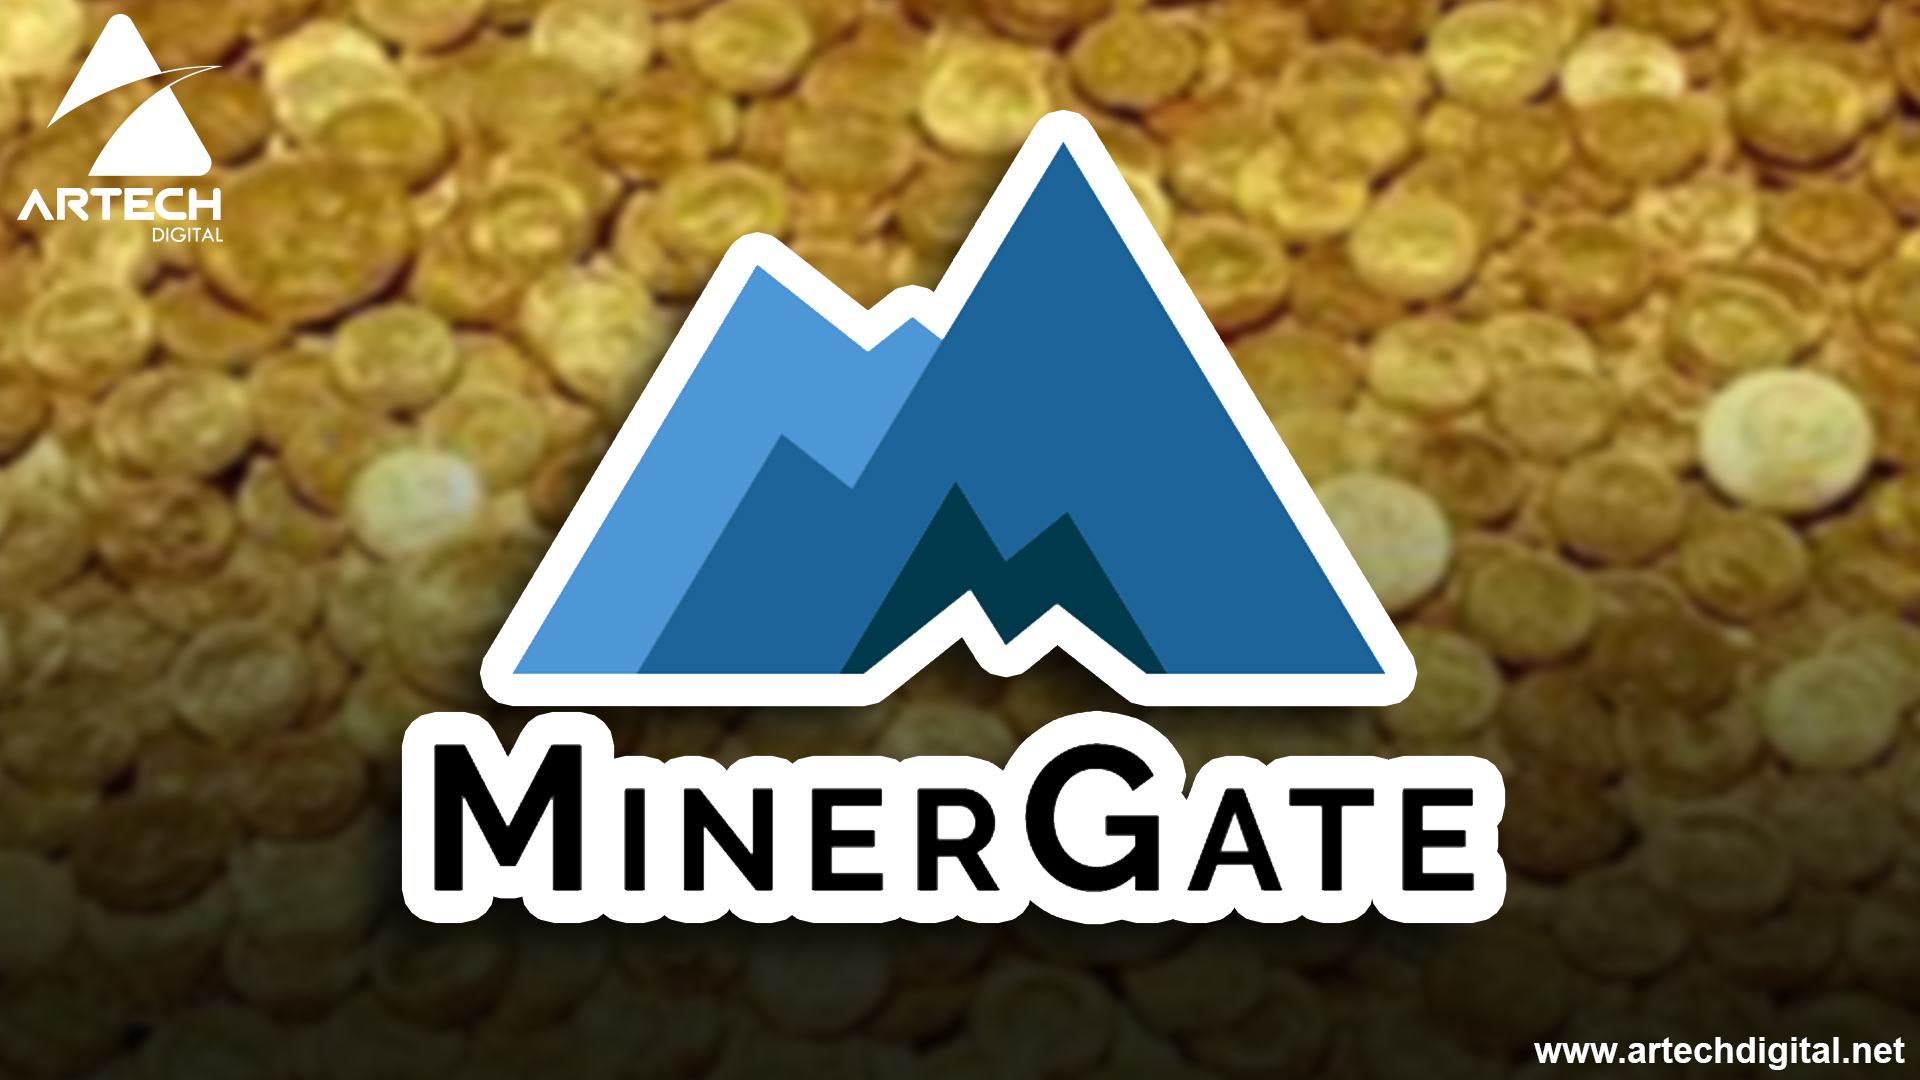 MinerGate: Mining technology for everyone.